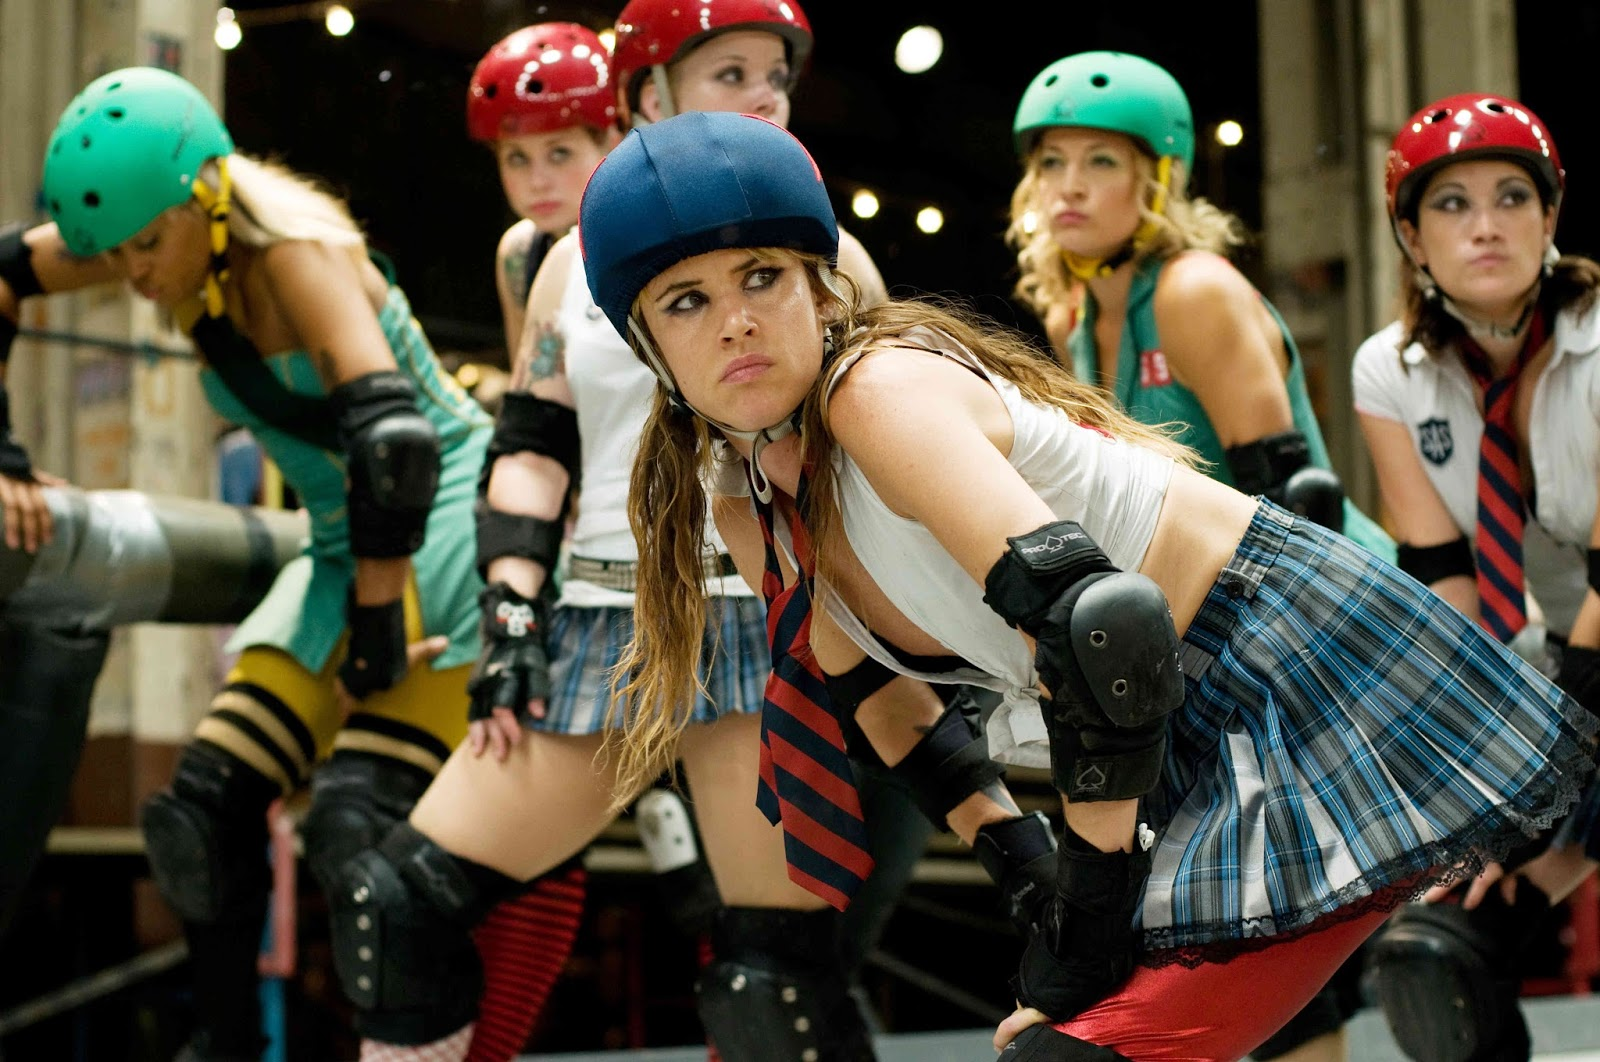 Roller skating derby - Juliette Lewis As Iron Maven In Whip It